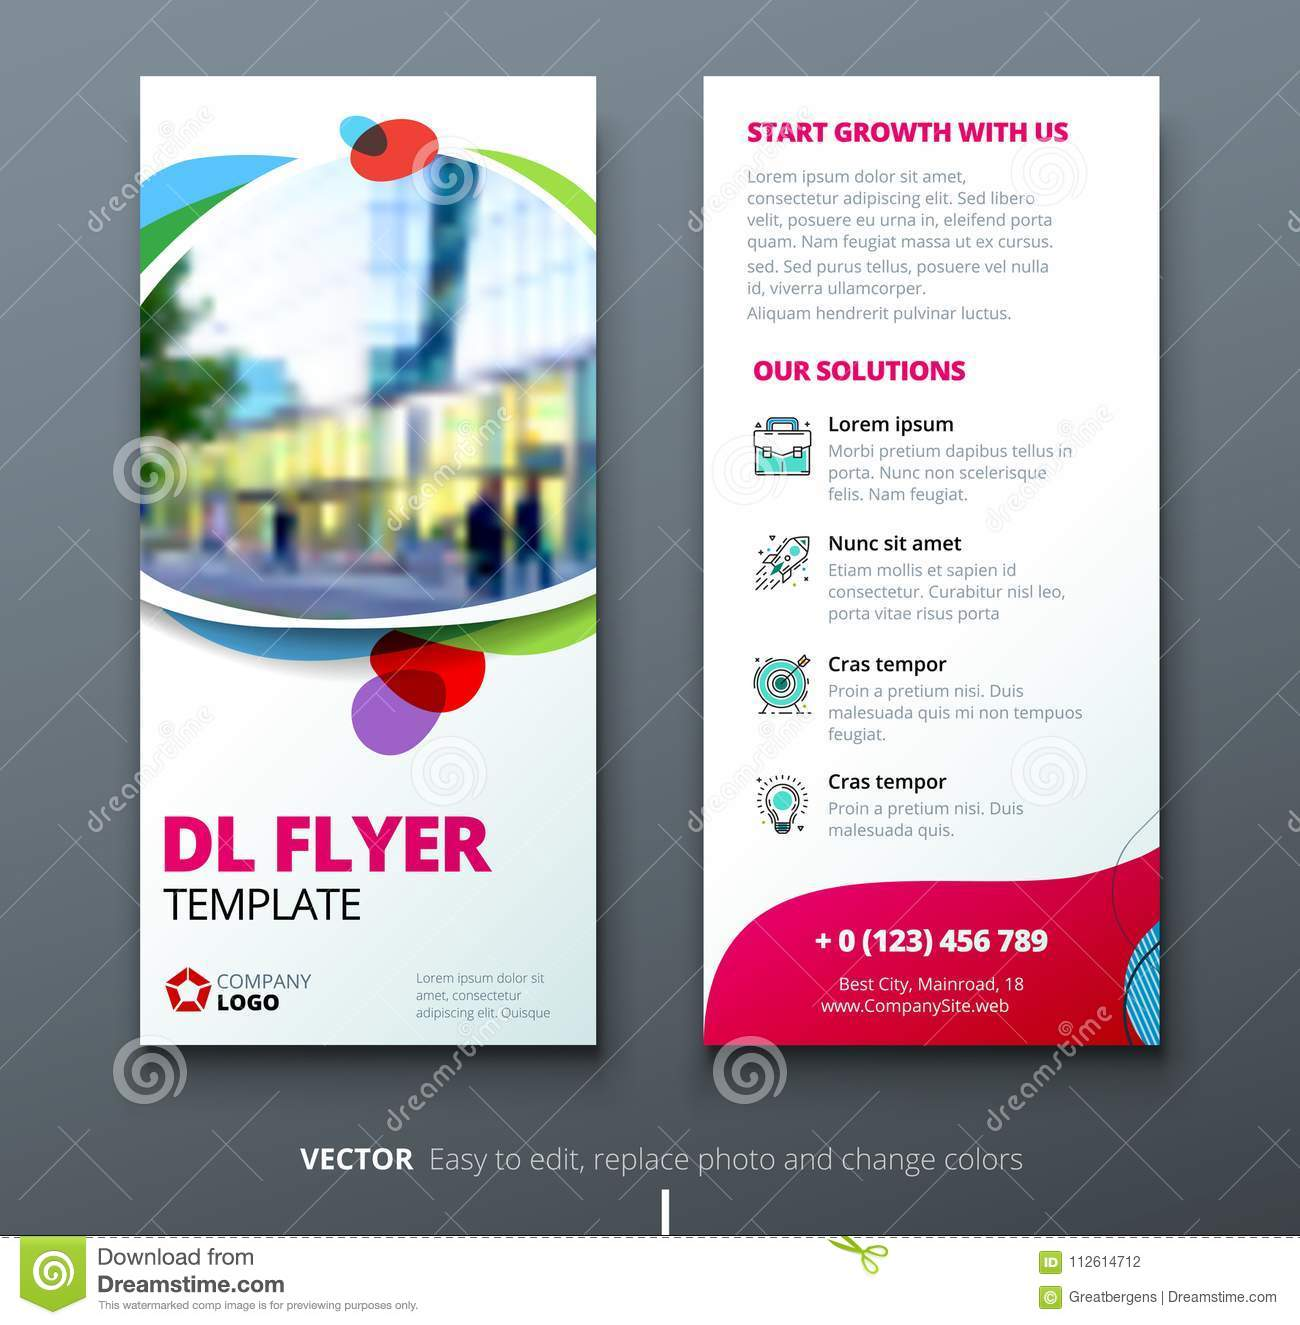 Dl Flyer Design Corporate Business Template For Dl Flyer With Color